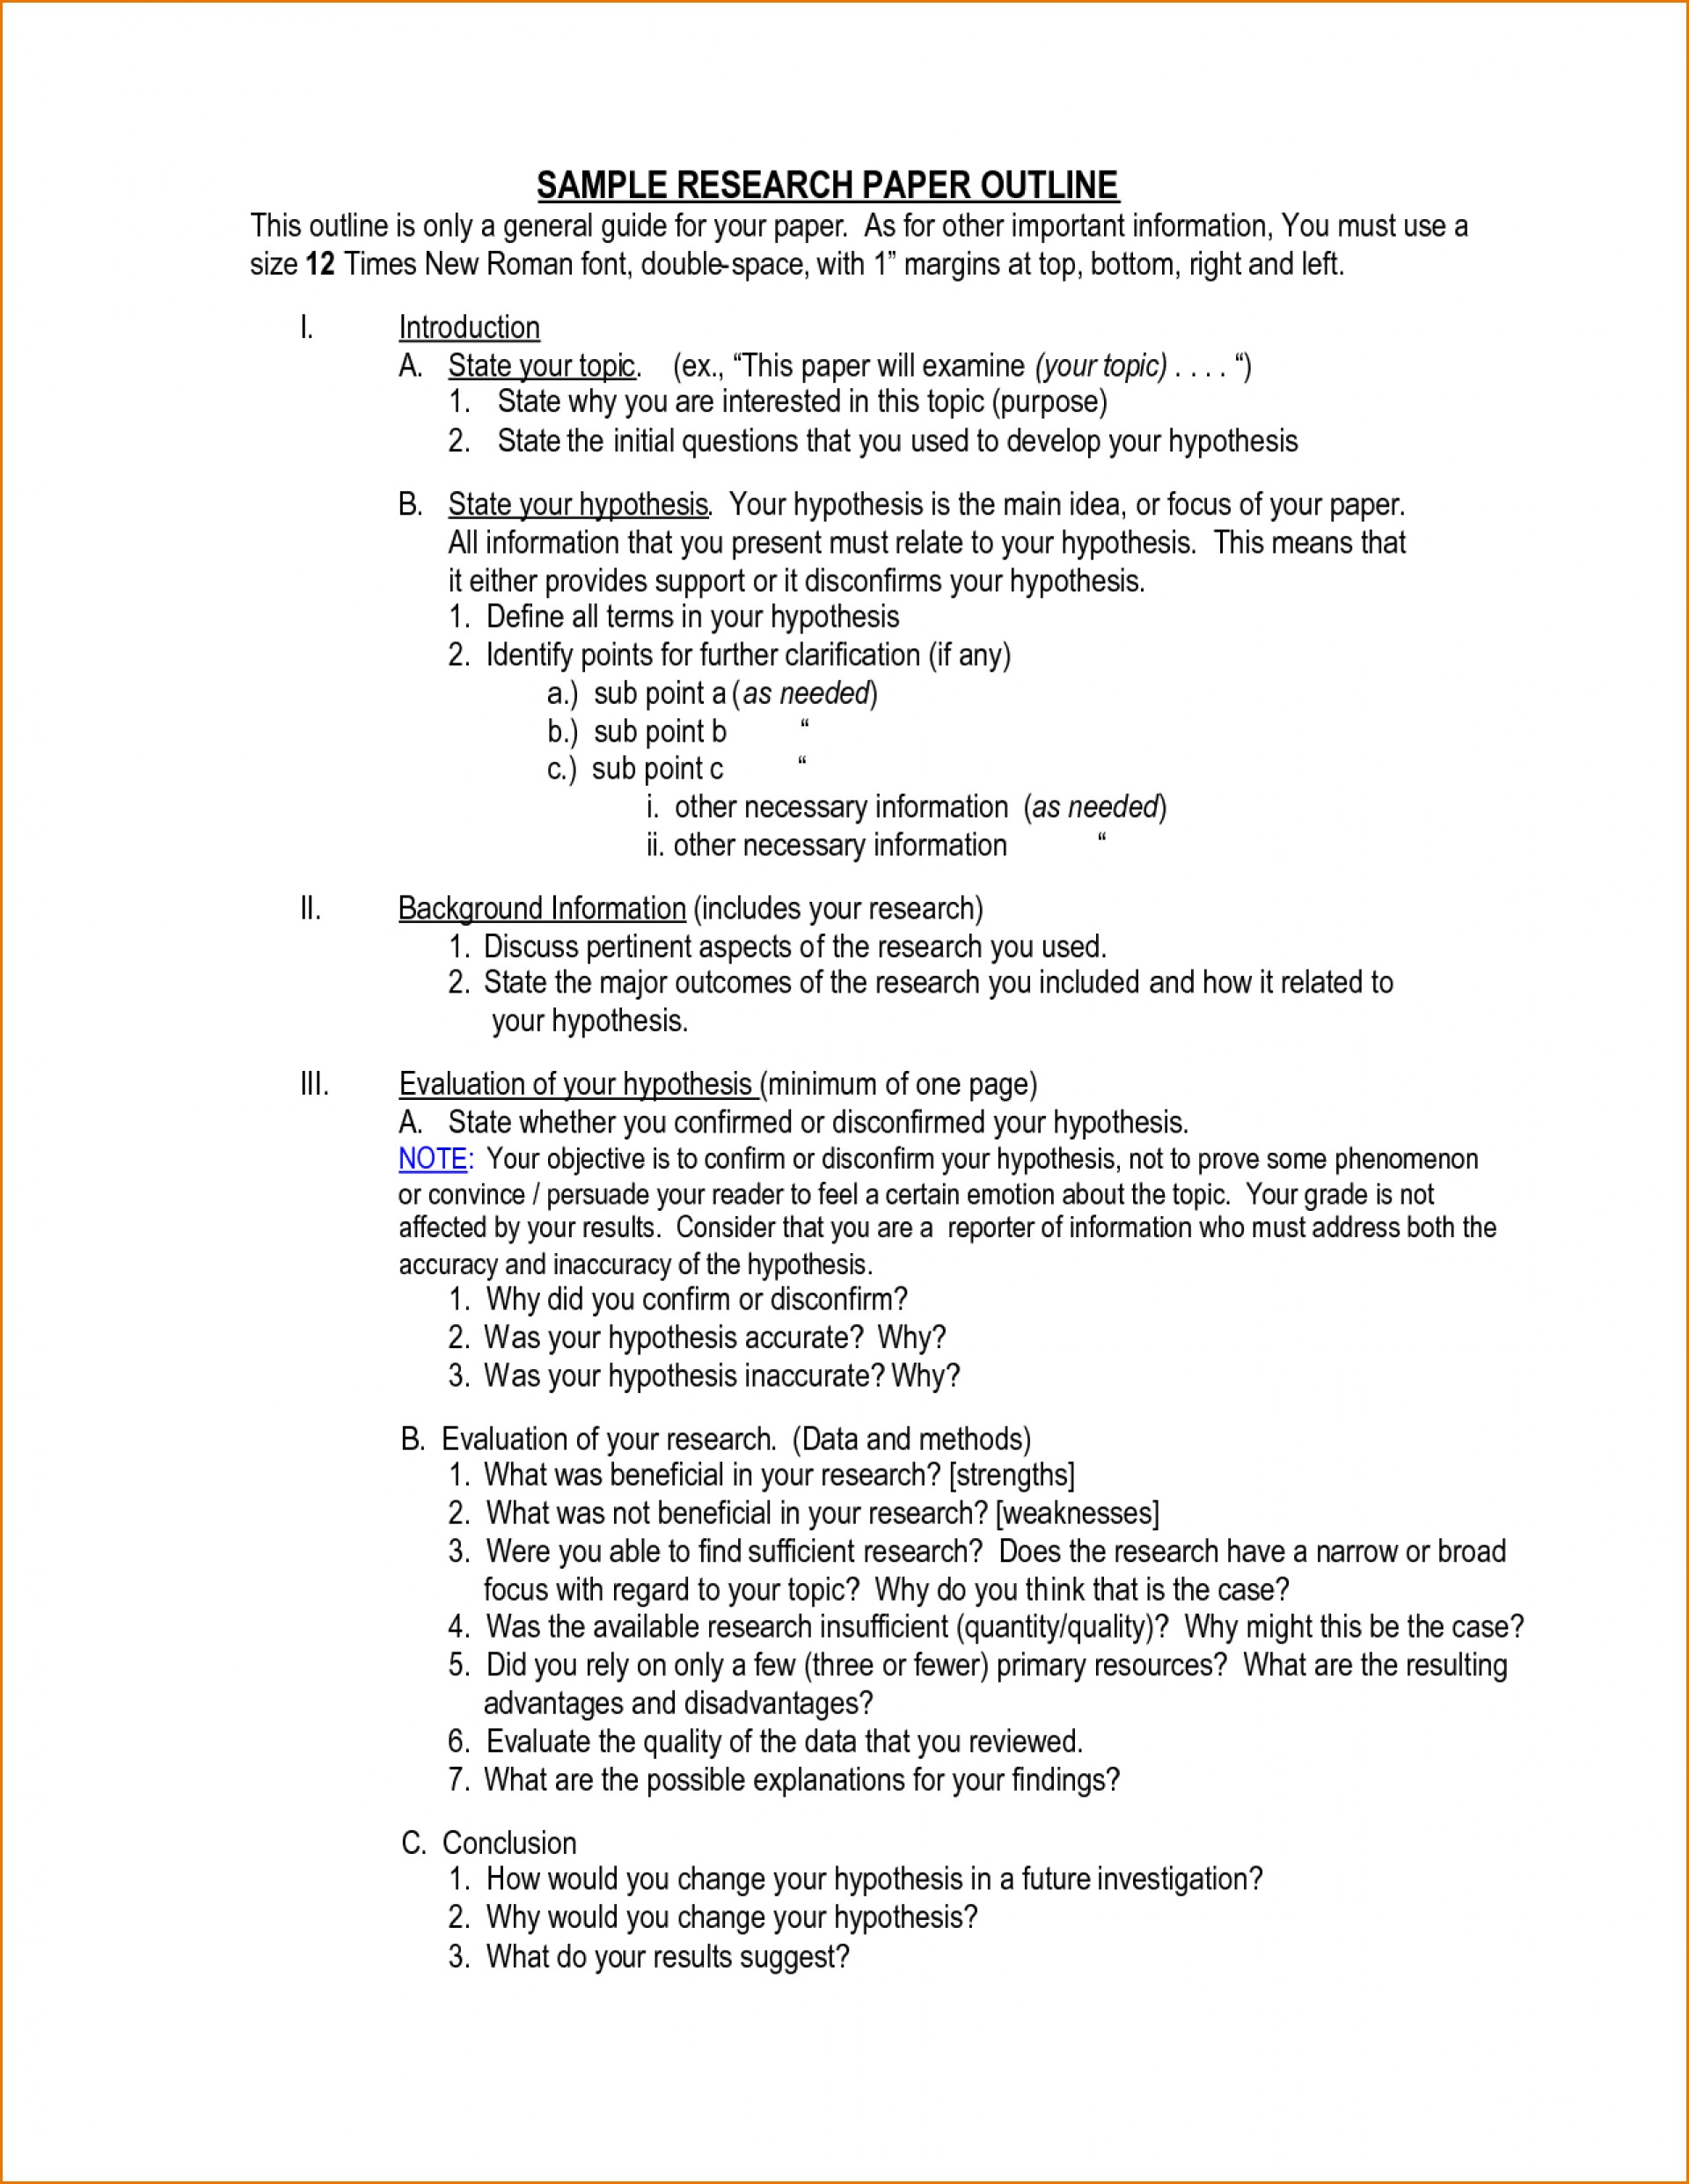 012 Research Paper Outline Template For Outlines Top A Sample Apa Style On Bullying In Schools Writing An 1920